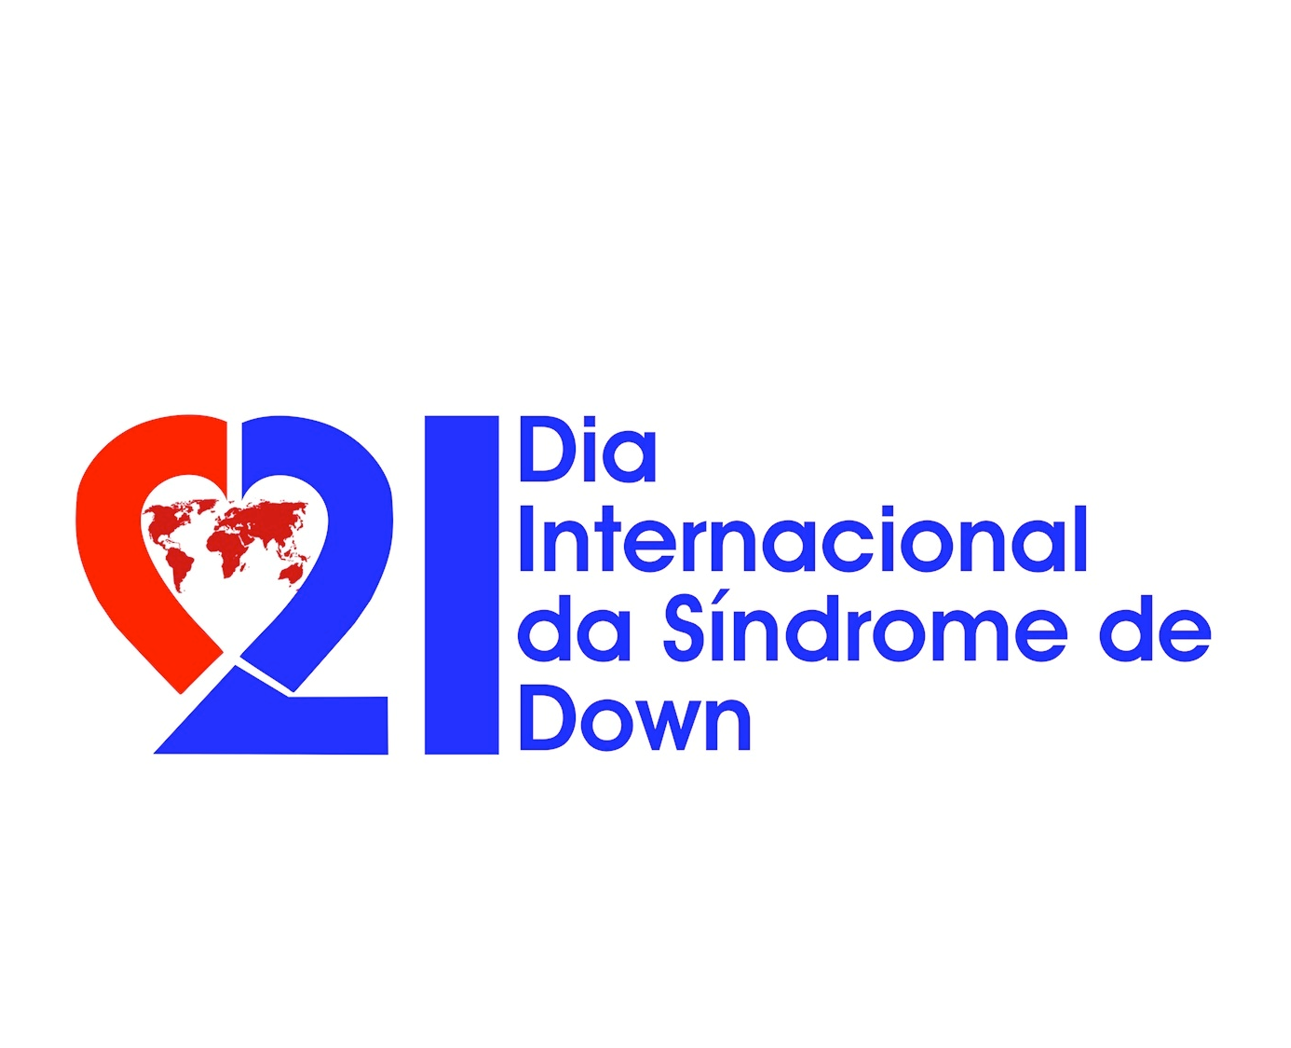 Programação do Dia Internacional da Síndrome de Down 2017